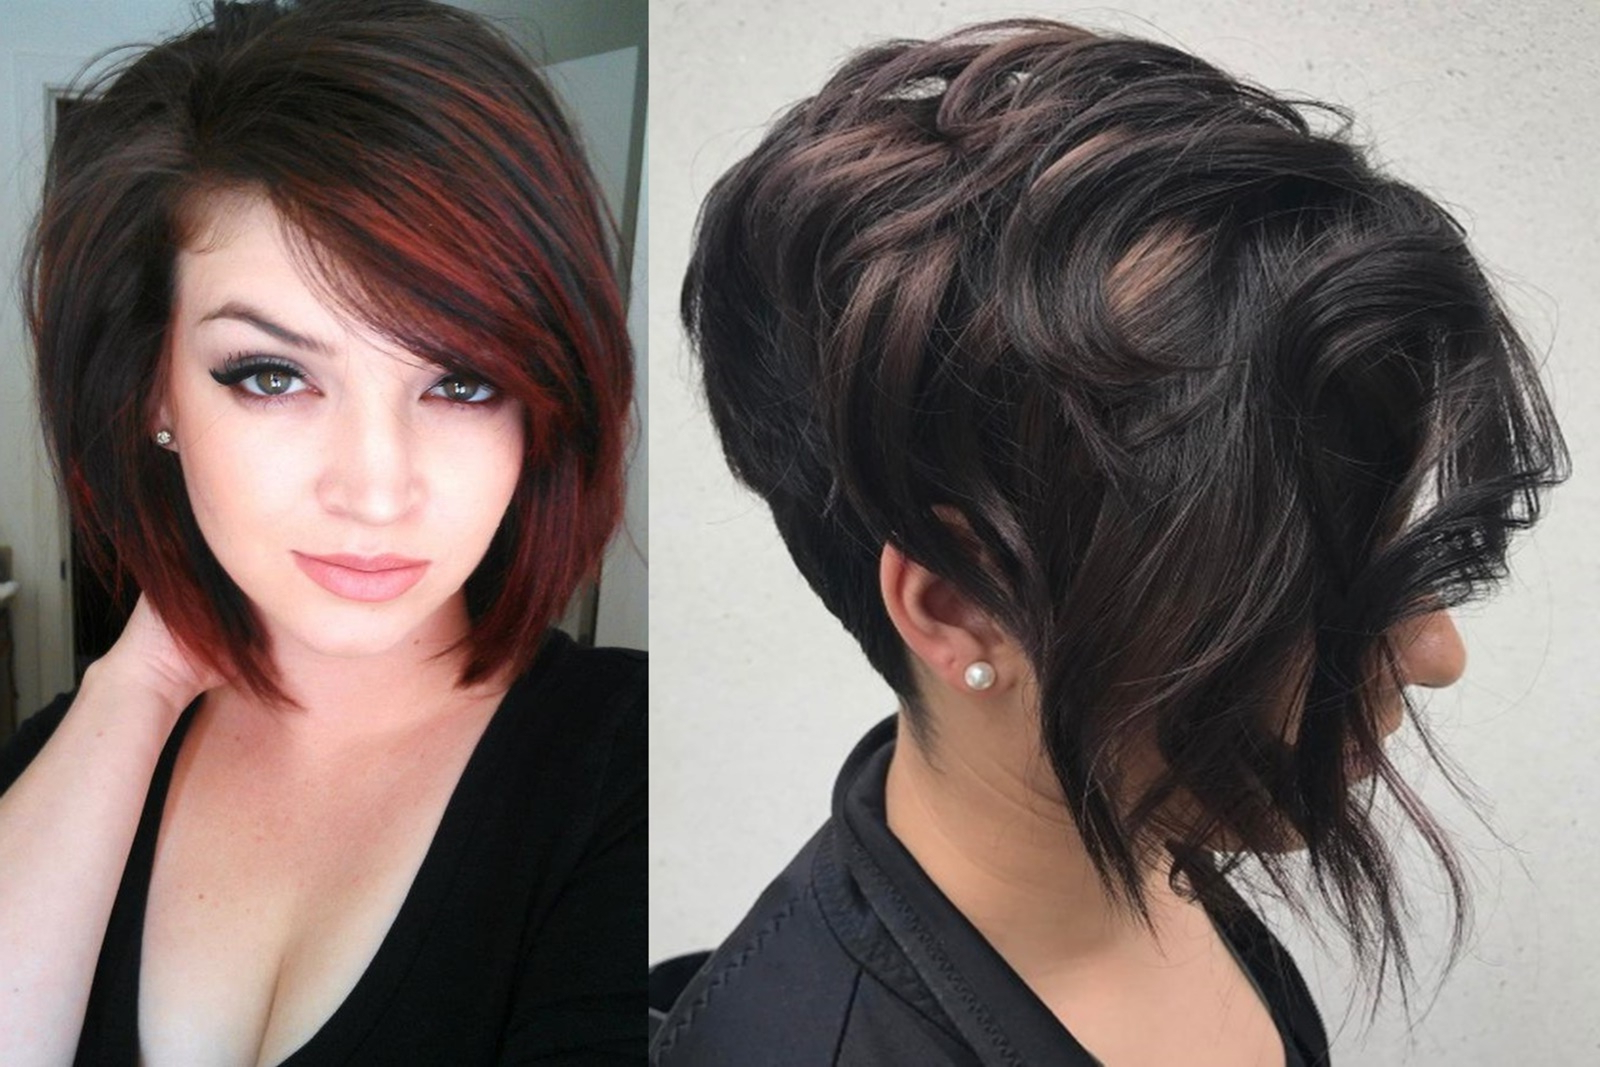 Trendy Short Haircuts For Fine Hair – Hair Fashion Online Regarding Short Trendy Hairstyles For Fine Hair (View 8 of 25)